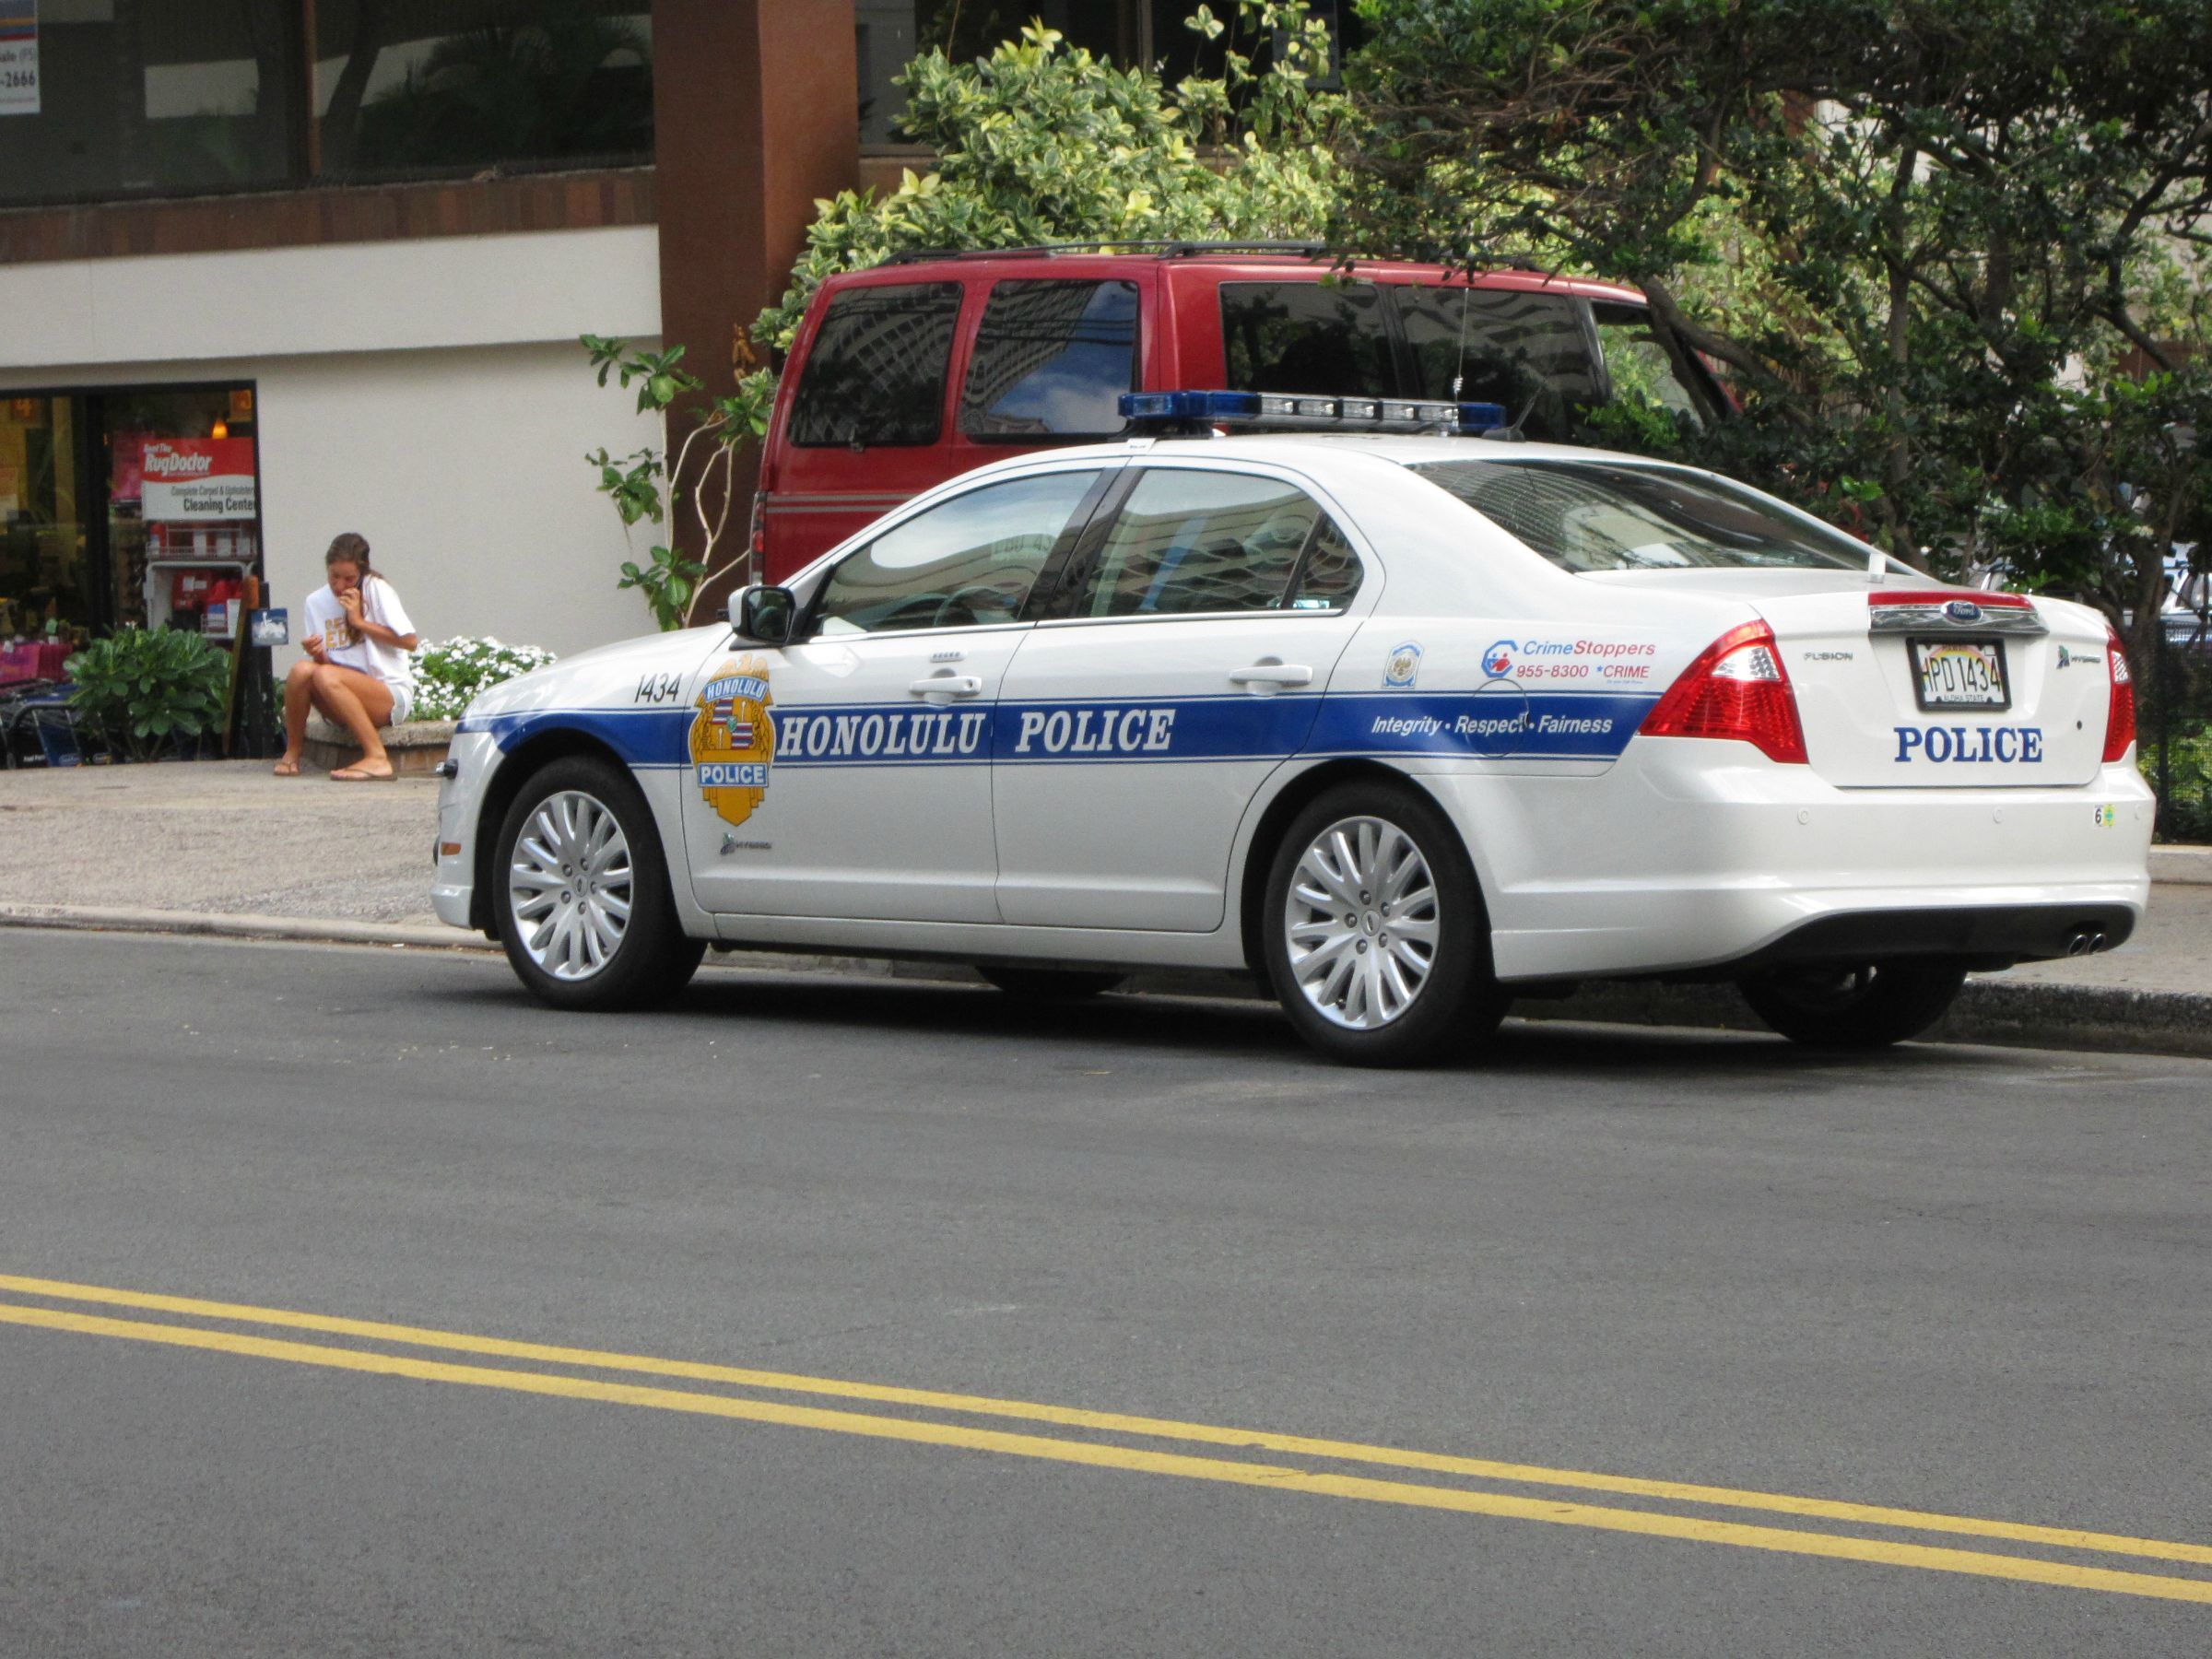 Honolulu Police Ford Fusion With Images Police Cars Honolulu